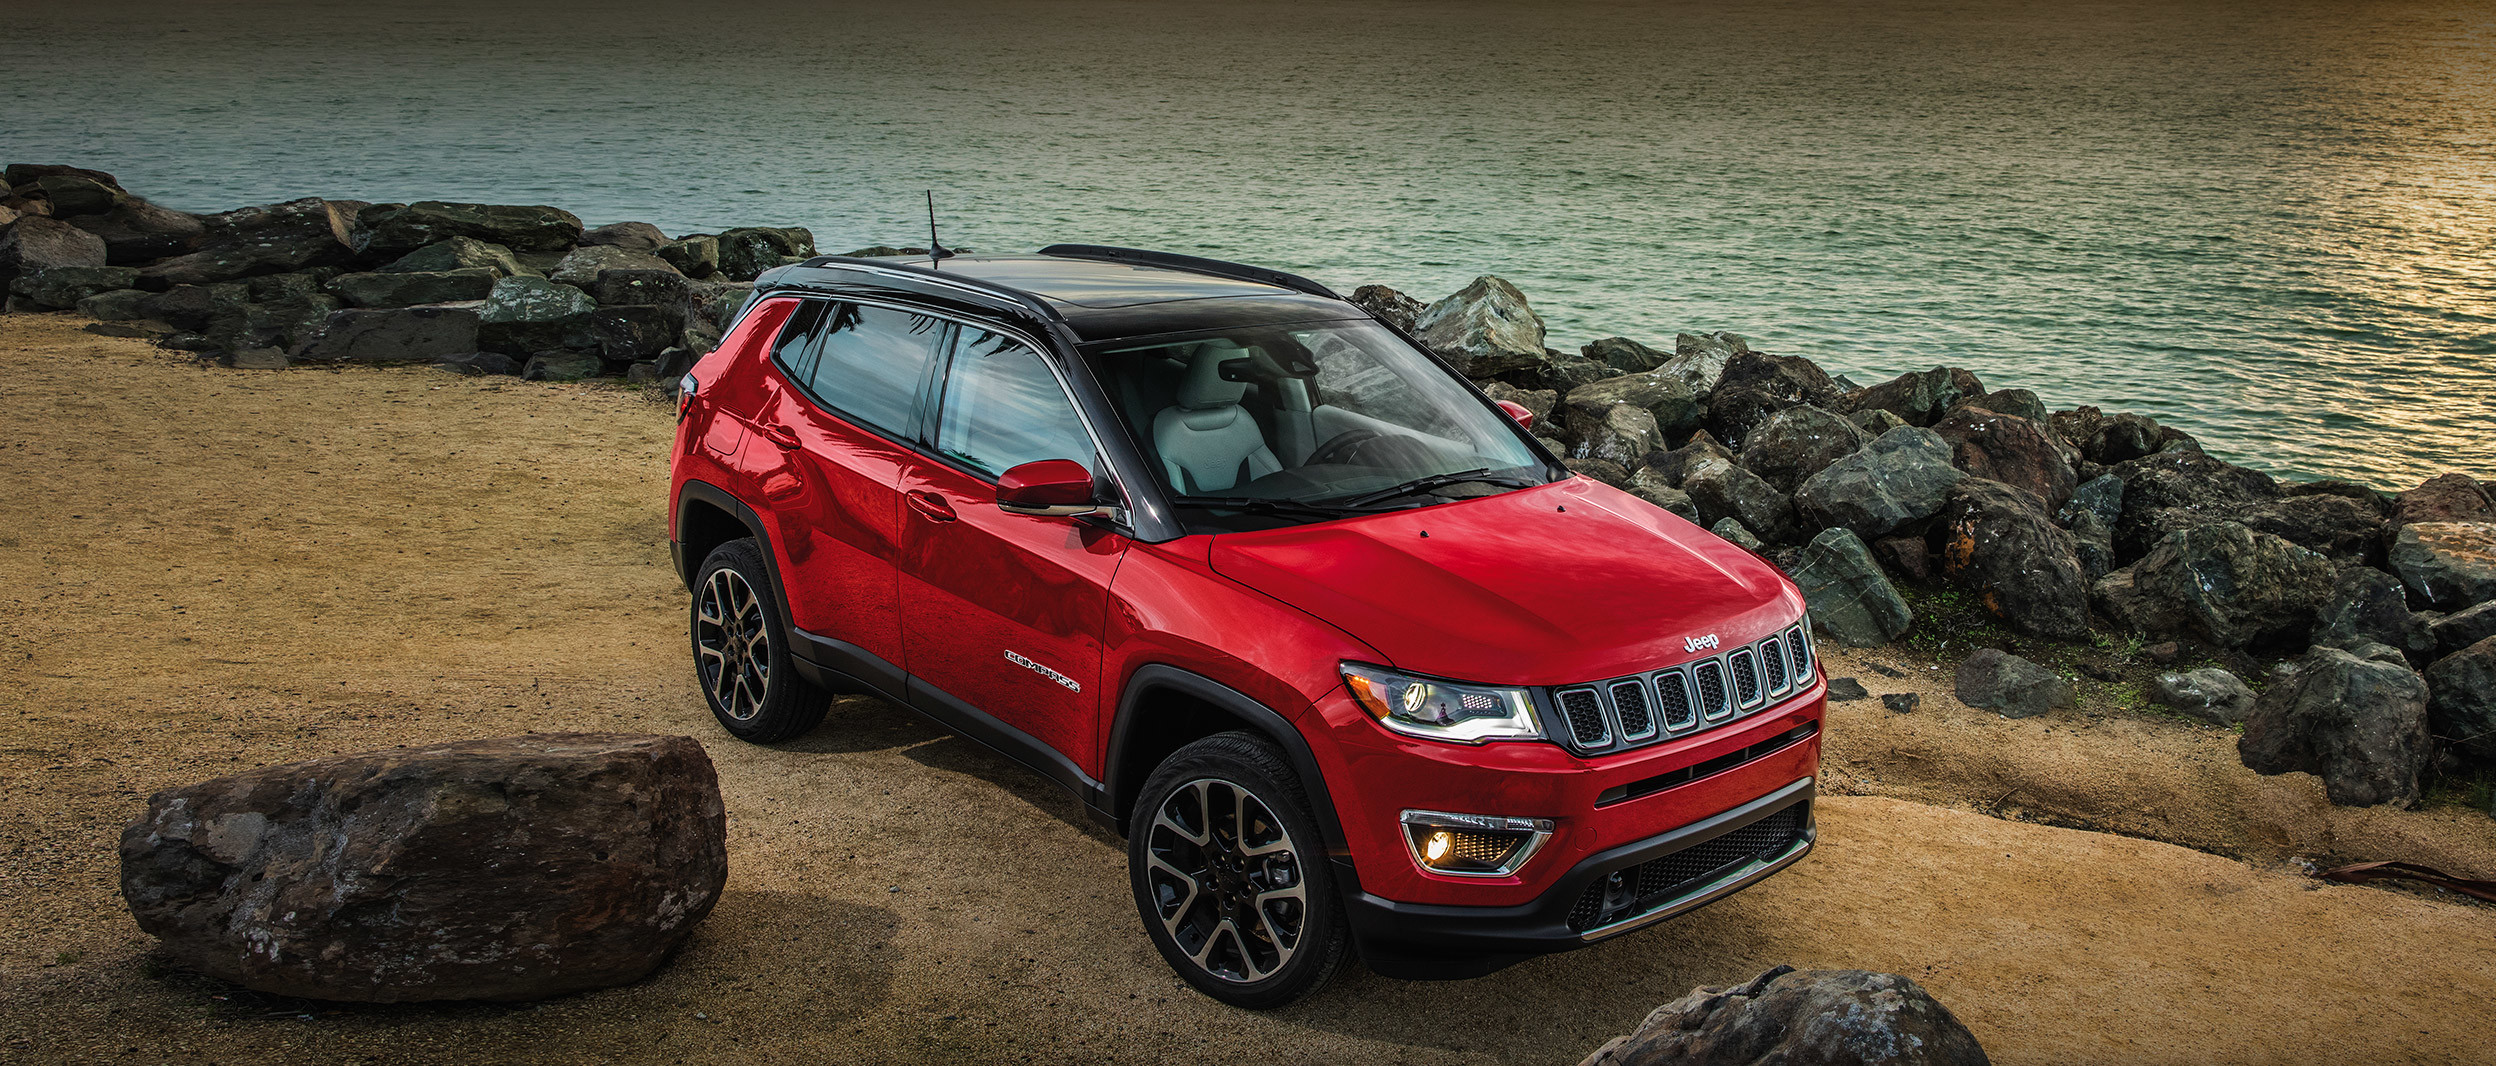 Red 2020 Jeep Compass parked by a river with a city in the background.